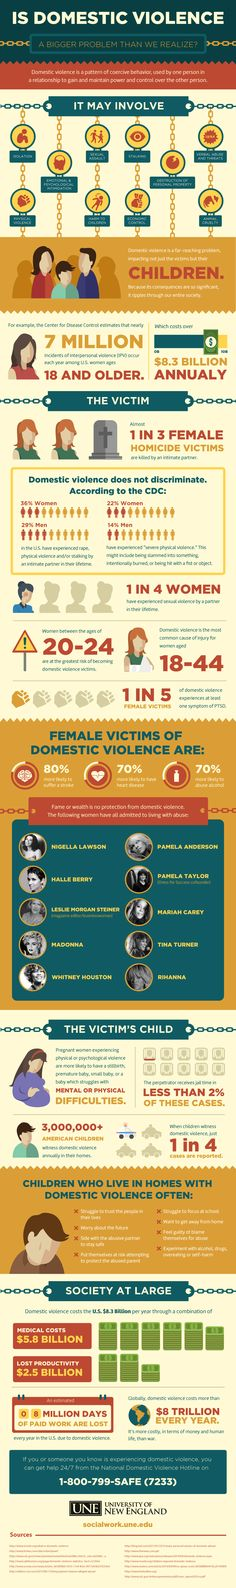 Is Domestic Violence a Bigger Problem Than We Realize? #infographic #DomesticViolence #Health